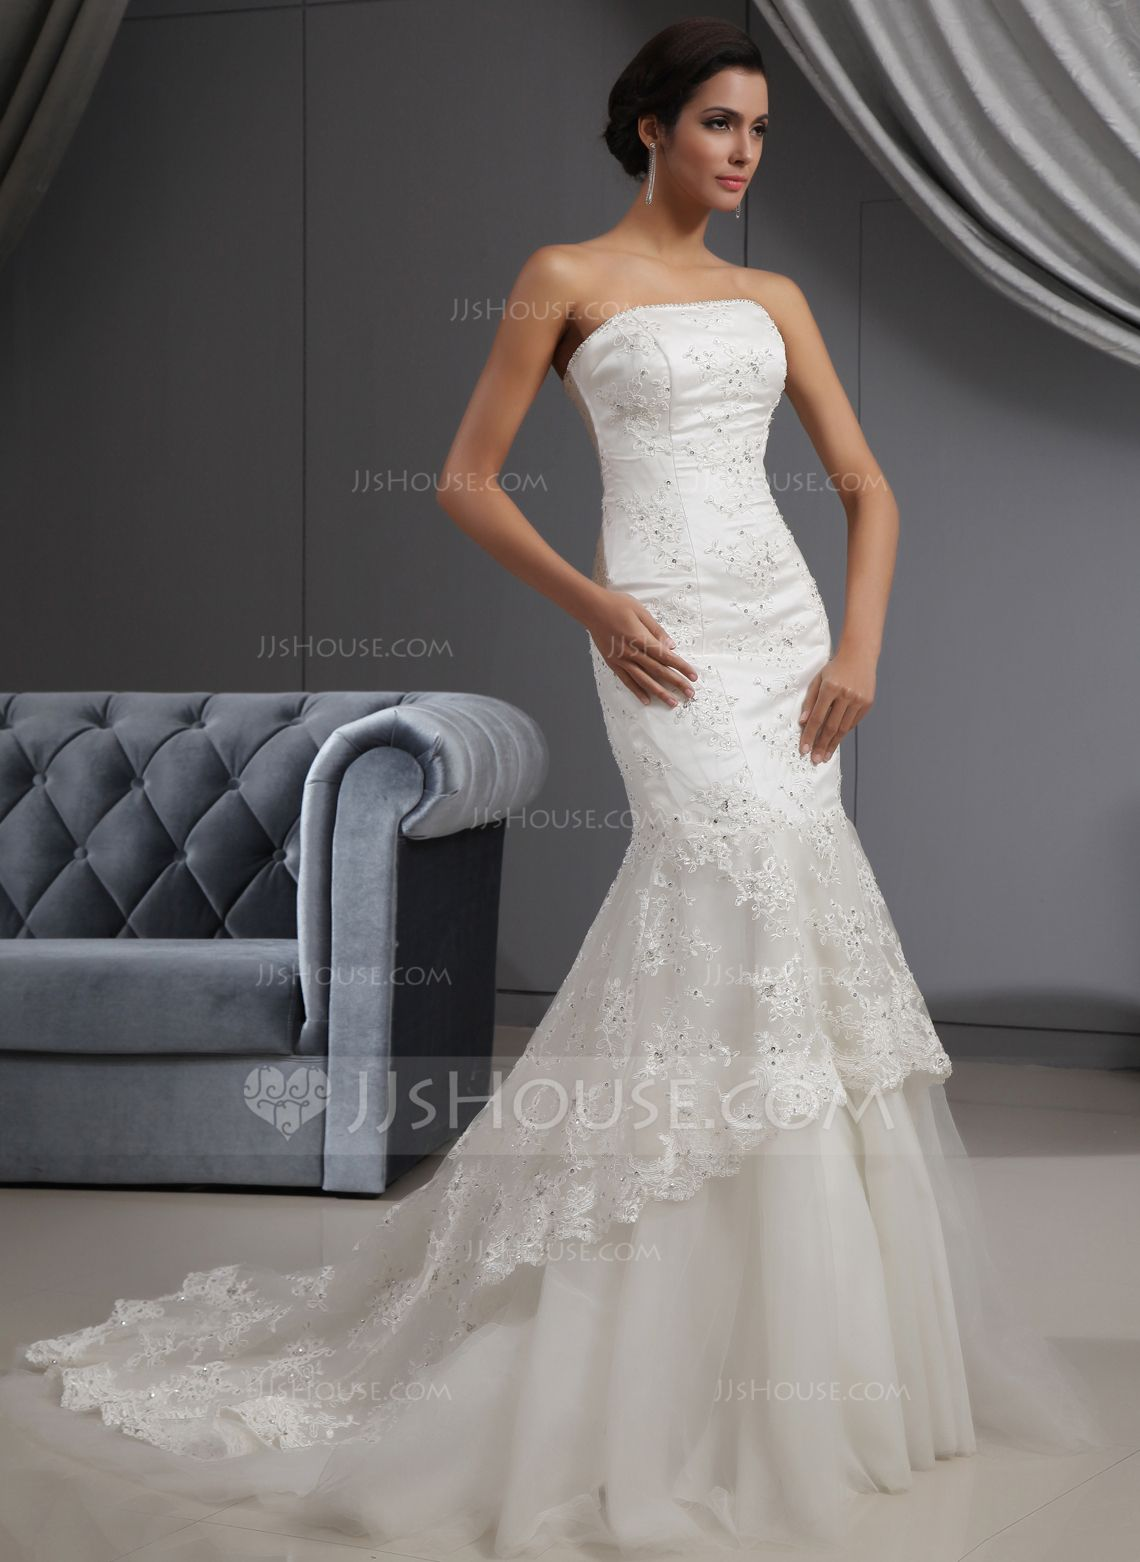 Sequined wedding dress  TrumpetMermaid Strapless Court Train Tulle Lace Wedding Dress With